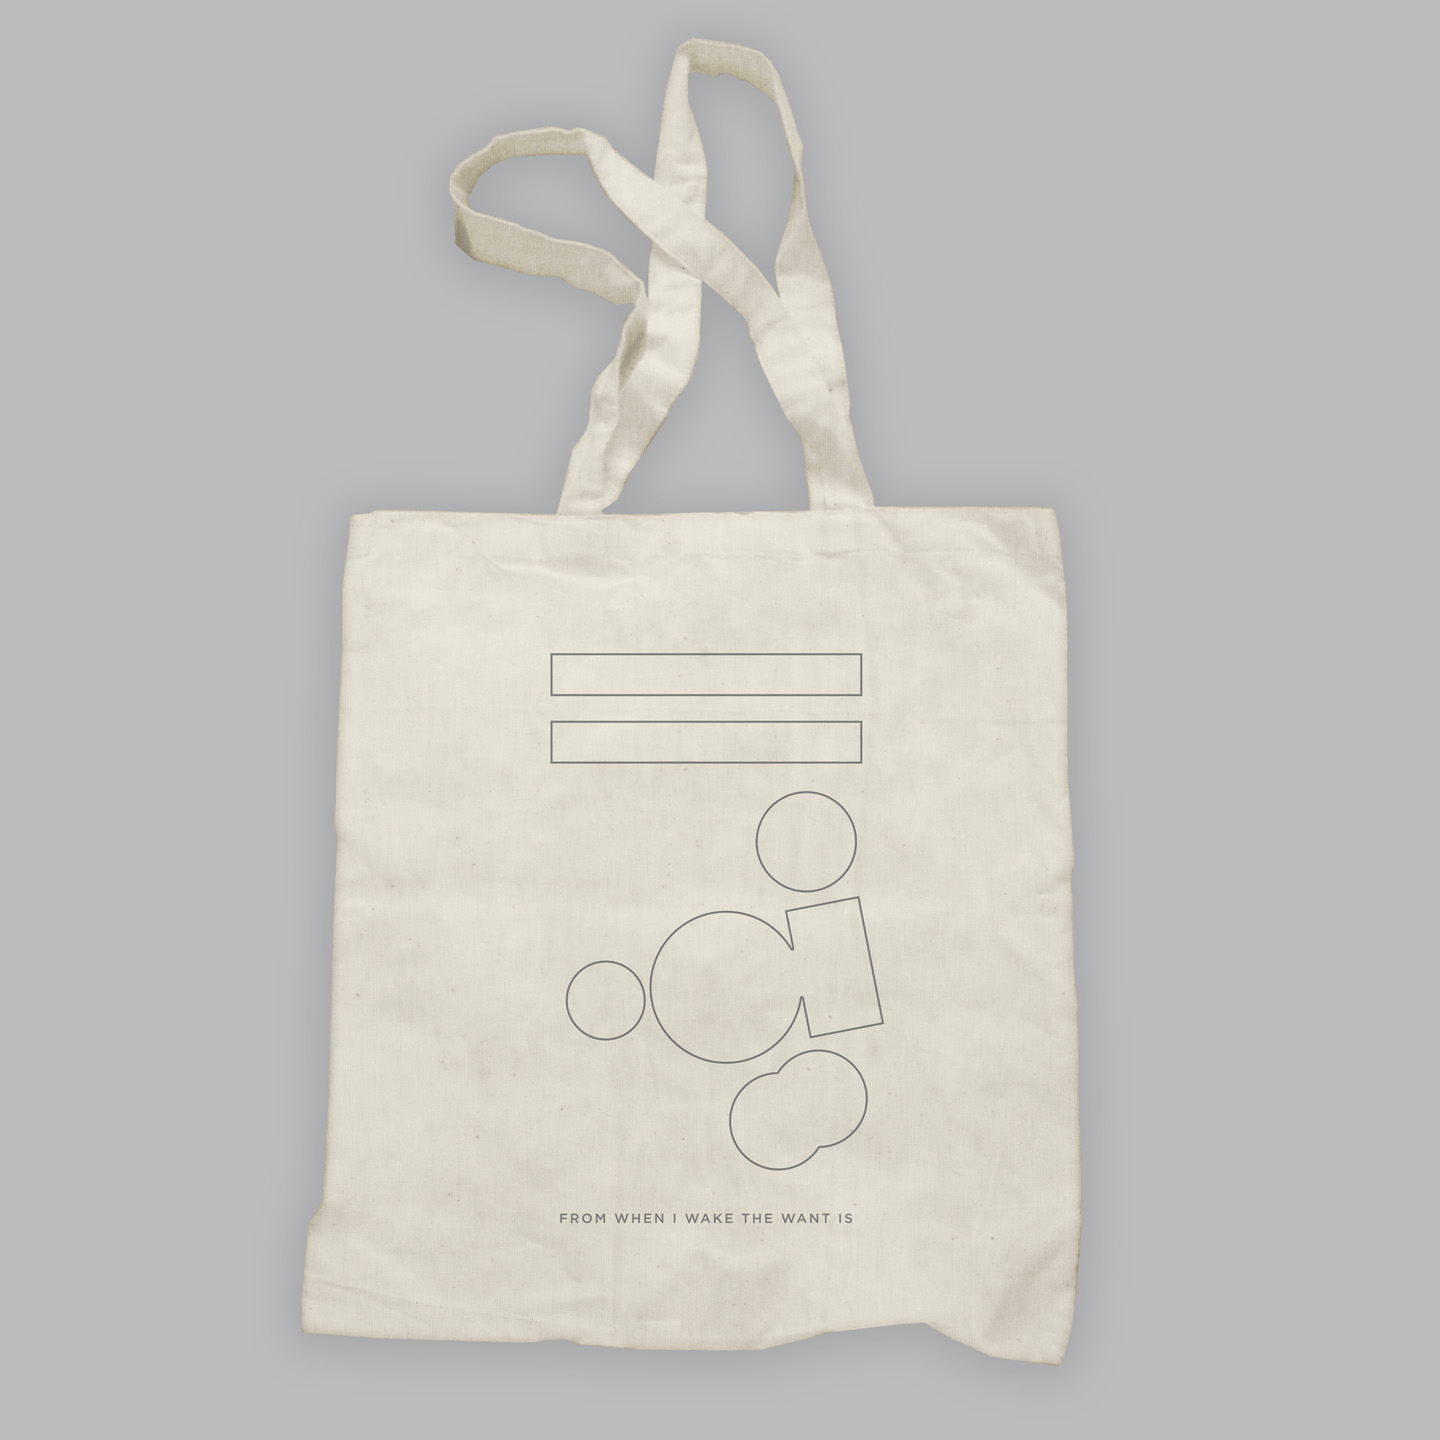 Tote Bag - From When I Wake The Want Is - kathryn joseph